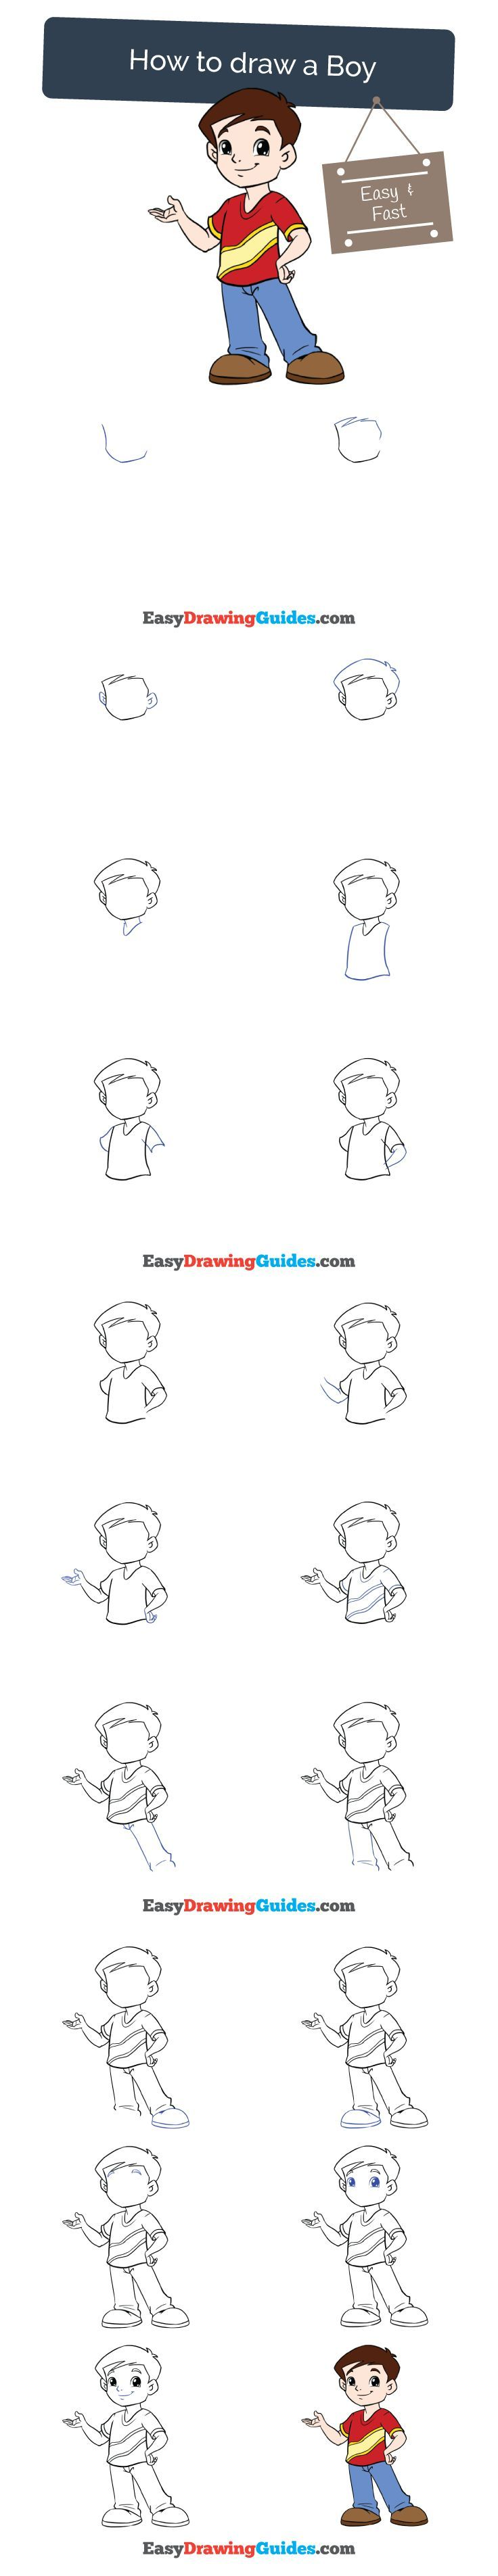 Learn How To Draw A Boy Easy Step By Step Drawing Tutorial For Kids And Beginners Boy Drawin Drawing Tutorials For Kids Easy Drawings Drawing Tutorial Easy